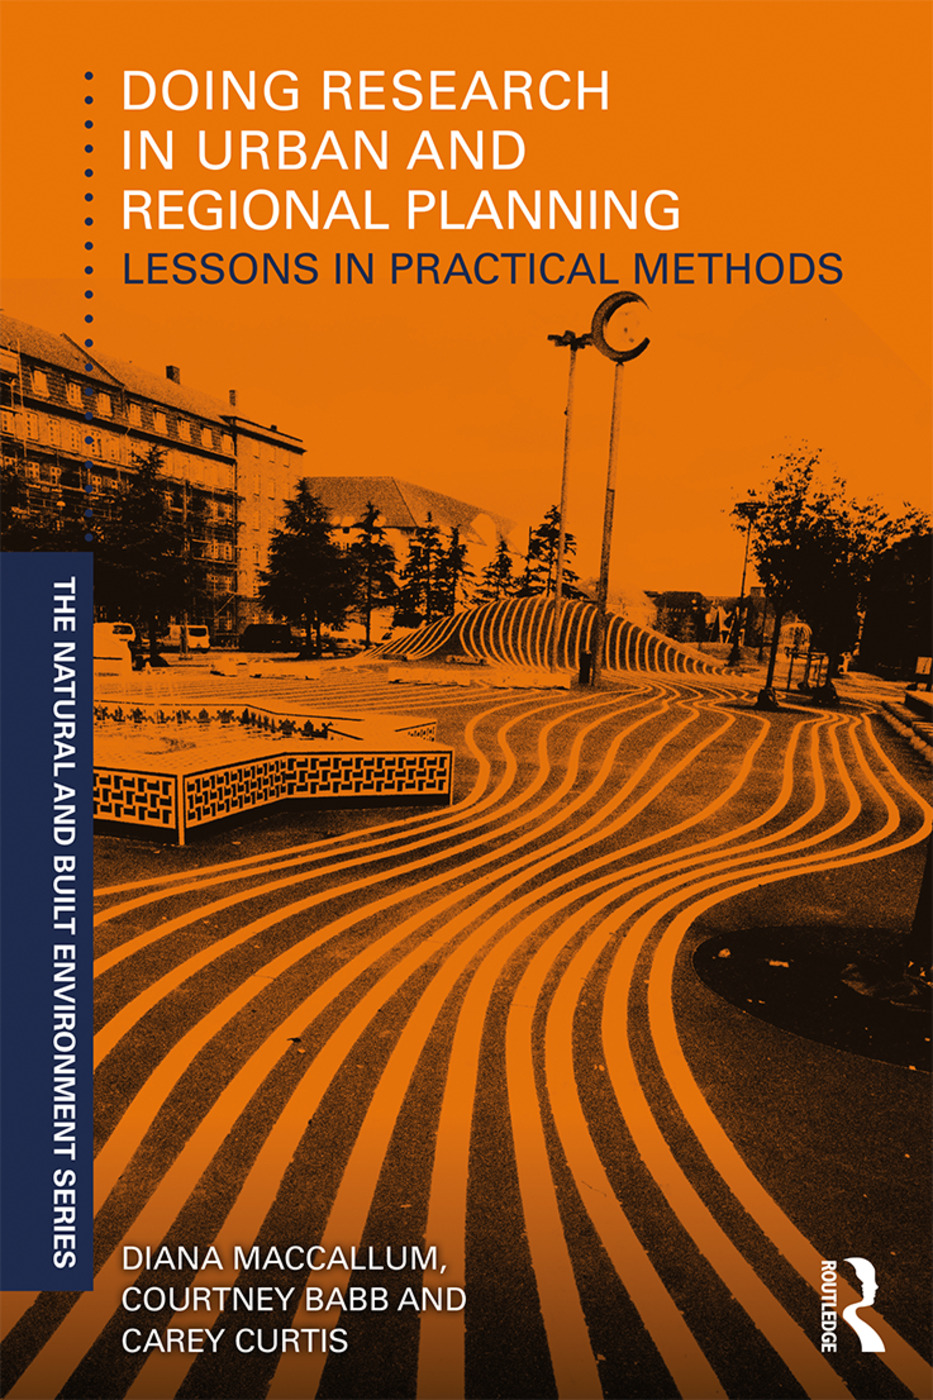 Doing Research in Urban and Regional Planning: Lessons in Practical Methods book cover